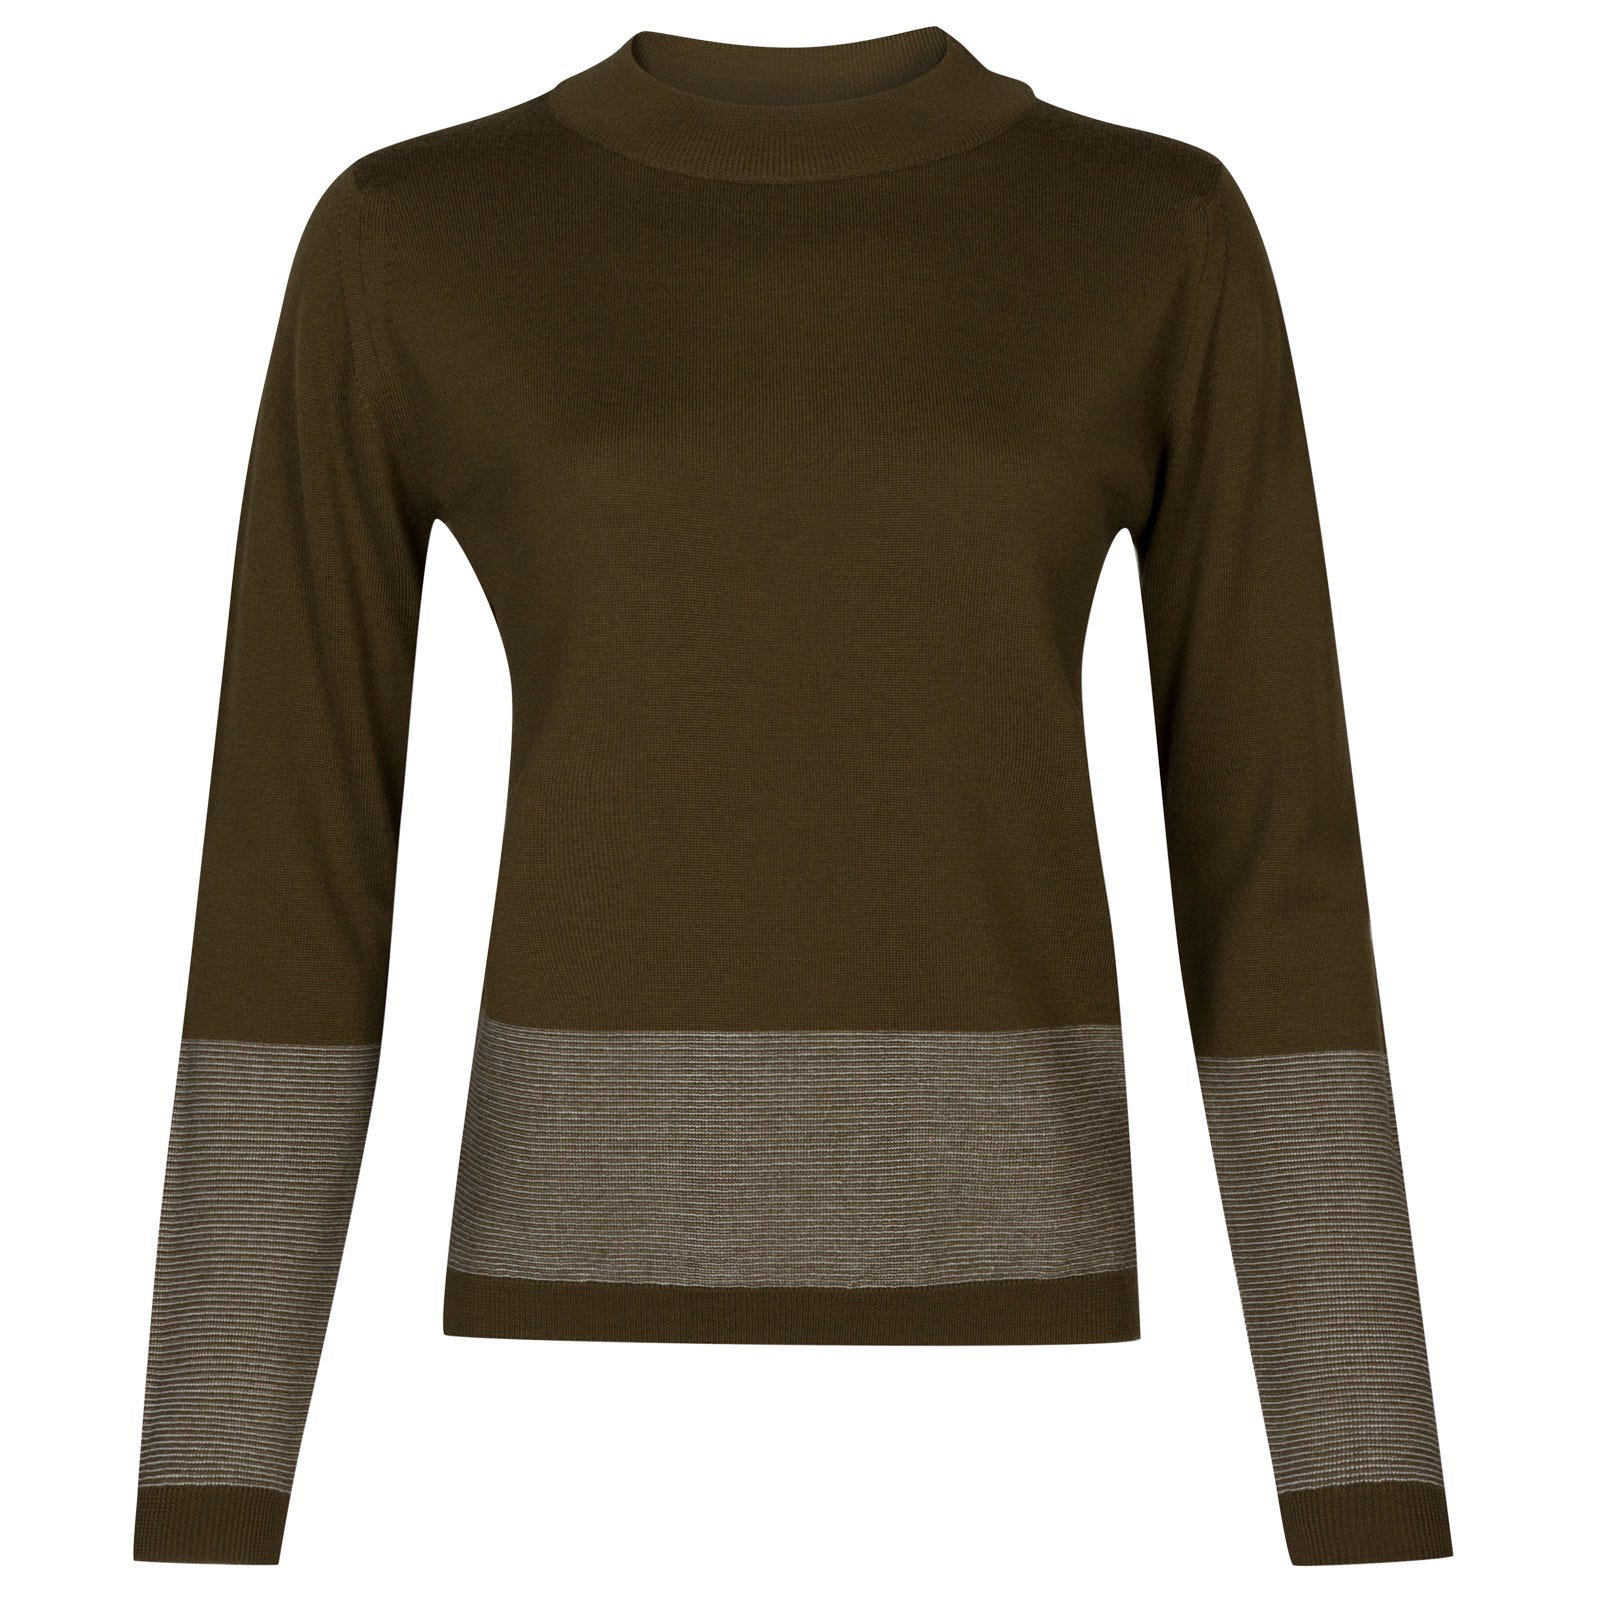 John Smedley sable Merino Wool Sweater in Kielder Green/Snow White-L